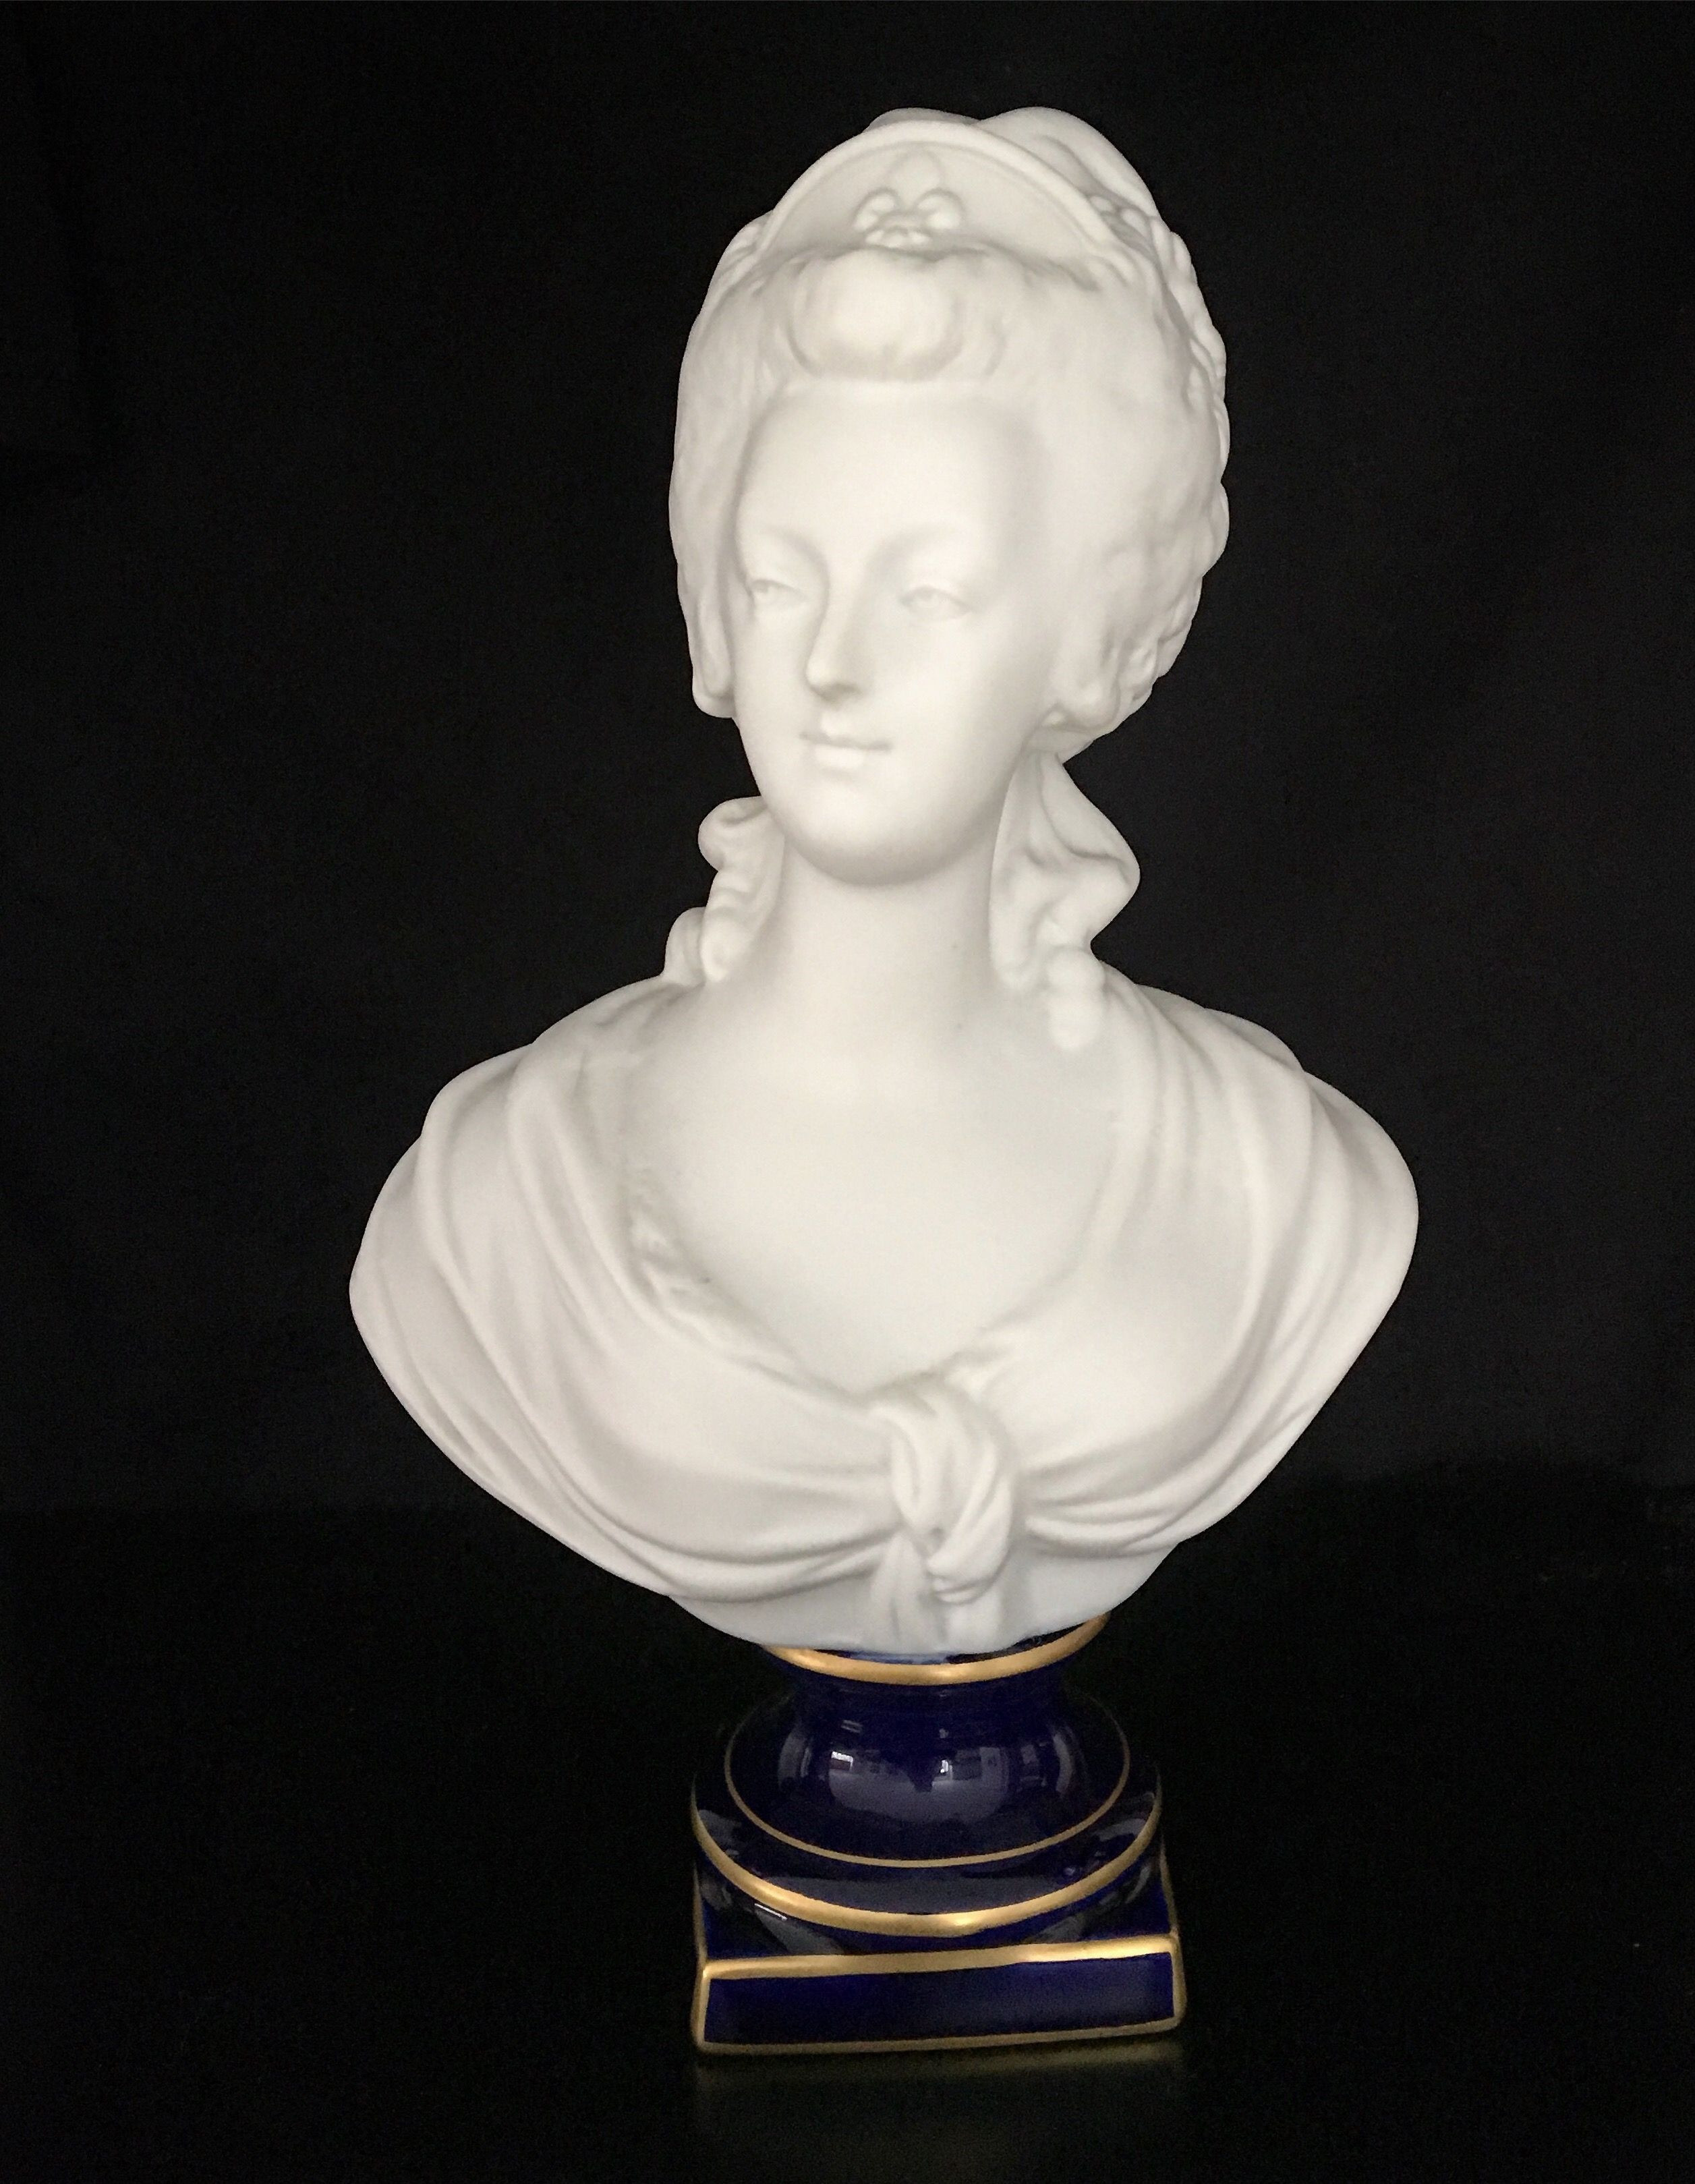 limoges vase prices of a limoges porcelaine bust of marie antoinette after brachard inside a limoges porcelaine bust of marie antoinette after brachard